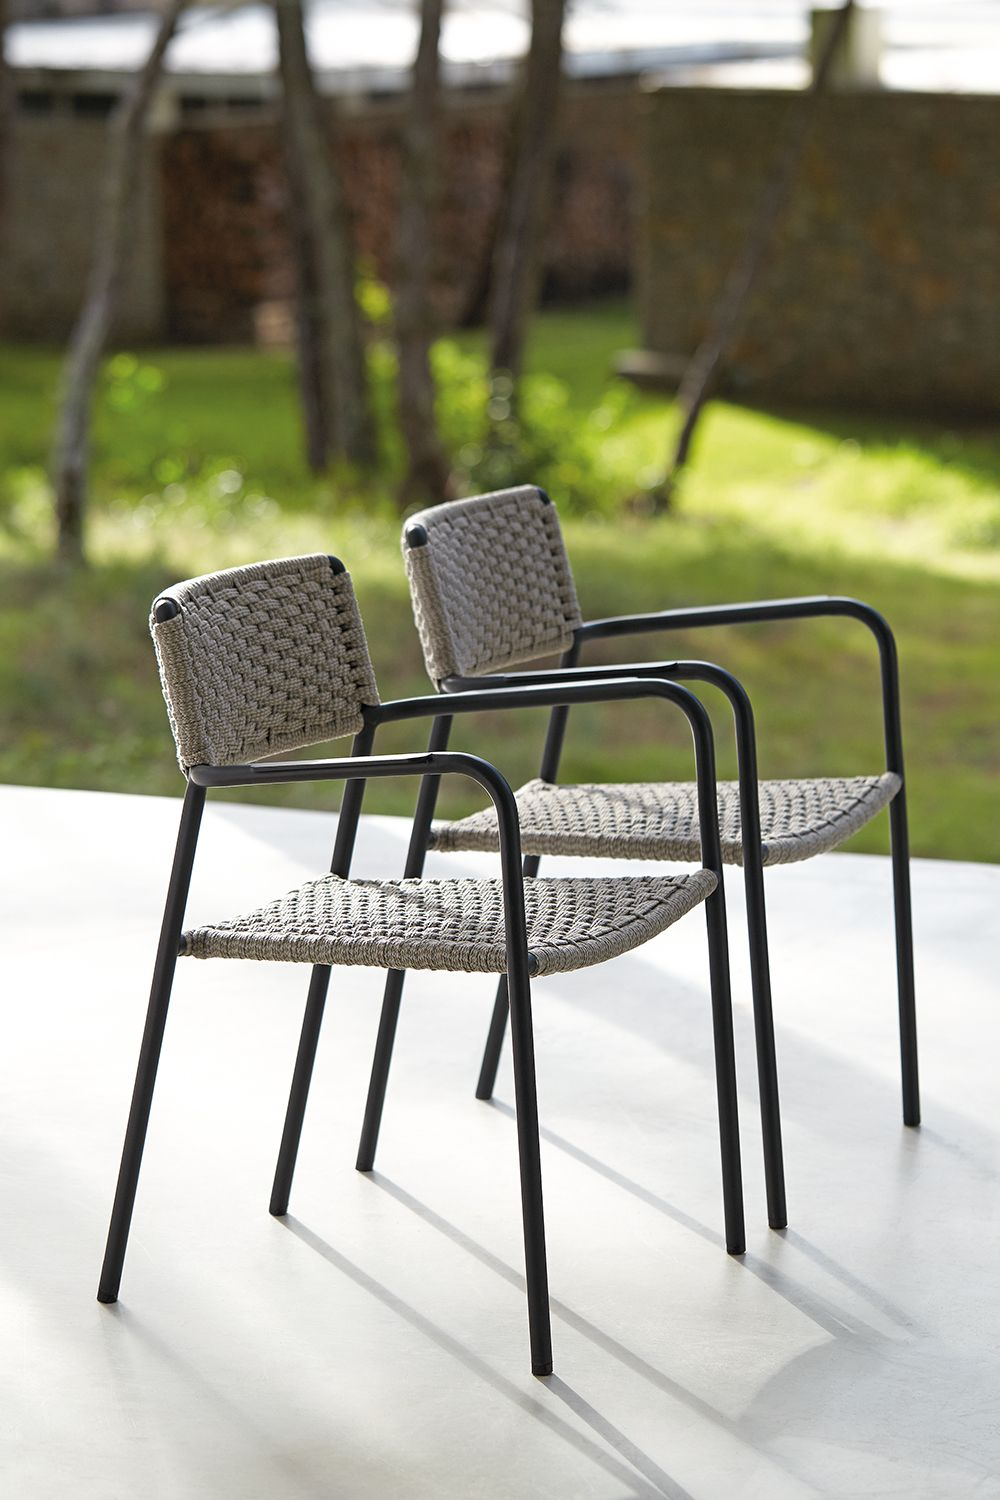 Fabulous Outdoor Dining Chair By Manutti Stackable Light Soft Unemploymentrelief Wooden Chair Designs For Living Room Unemploymentrelieforg